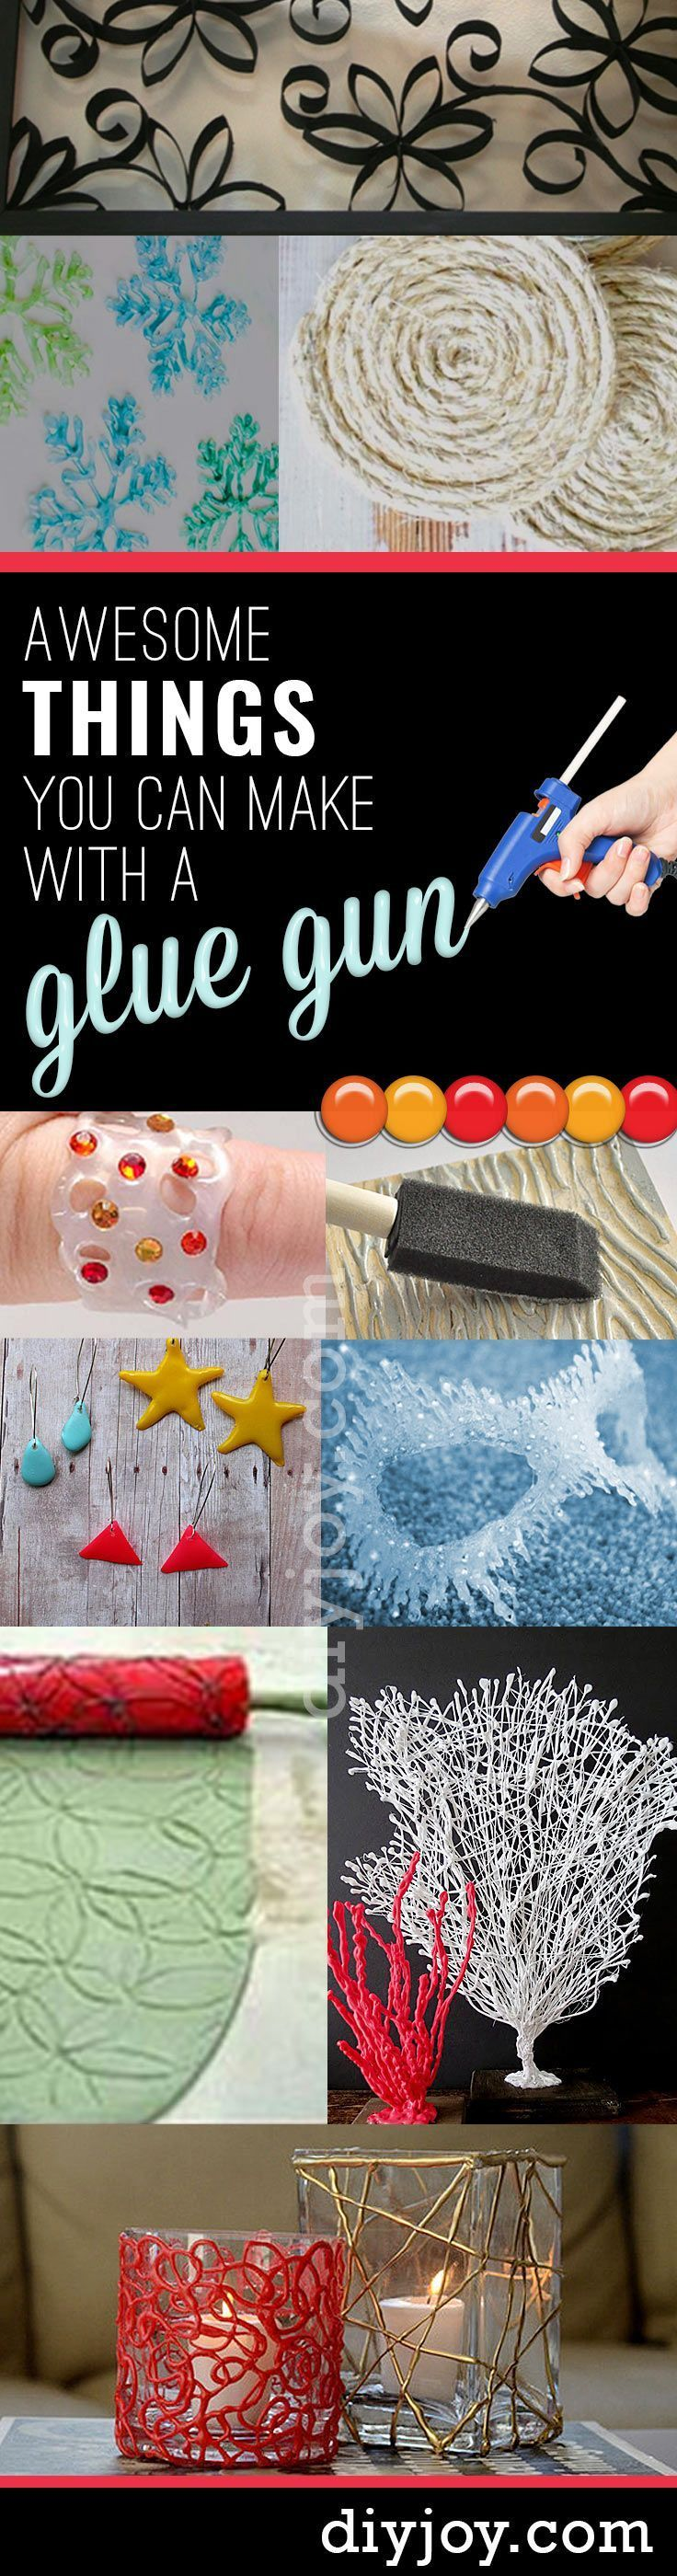 The 25 best ideas about glue gun crafts on pinterest for Cool things to make and do